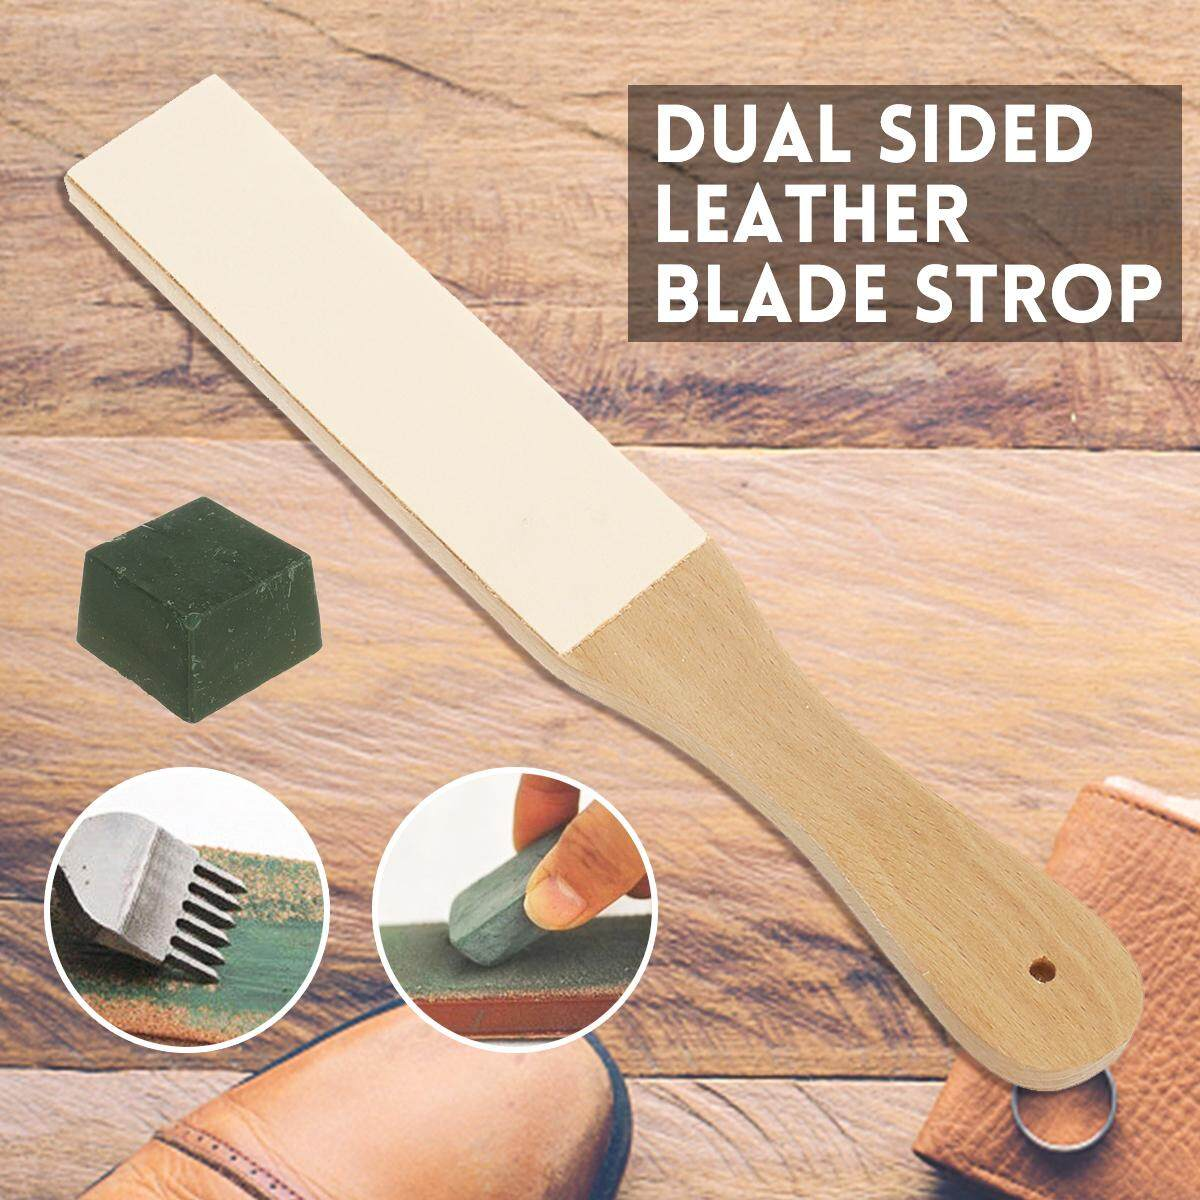 Dual Sided Leather Blade Strop for Razors Sharpener & Polishing Compounds Set